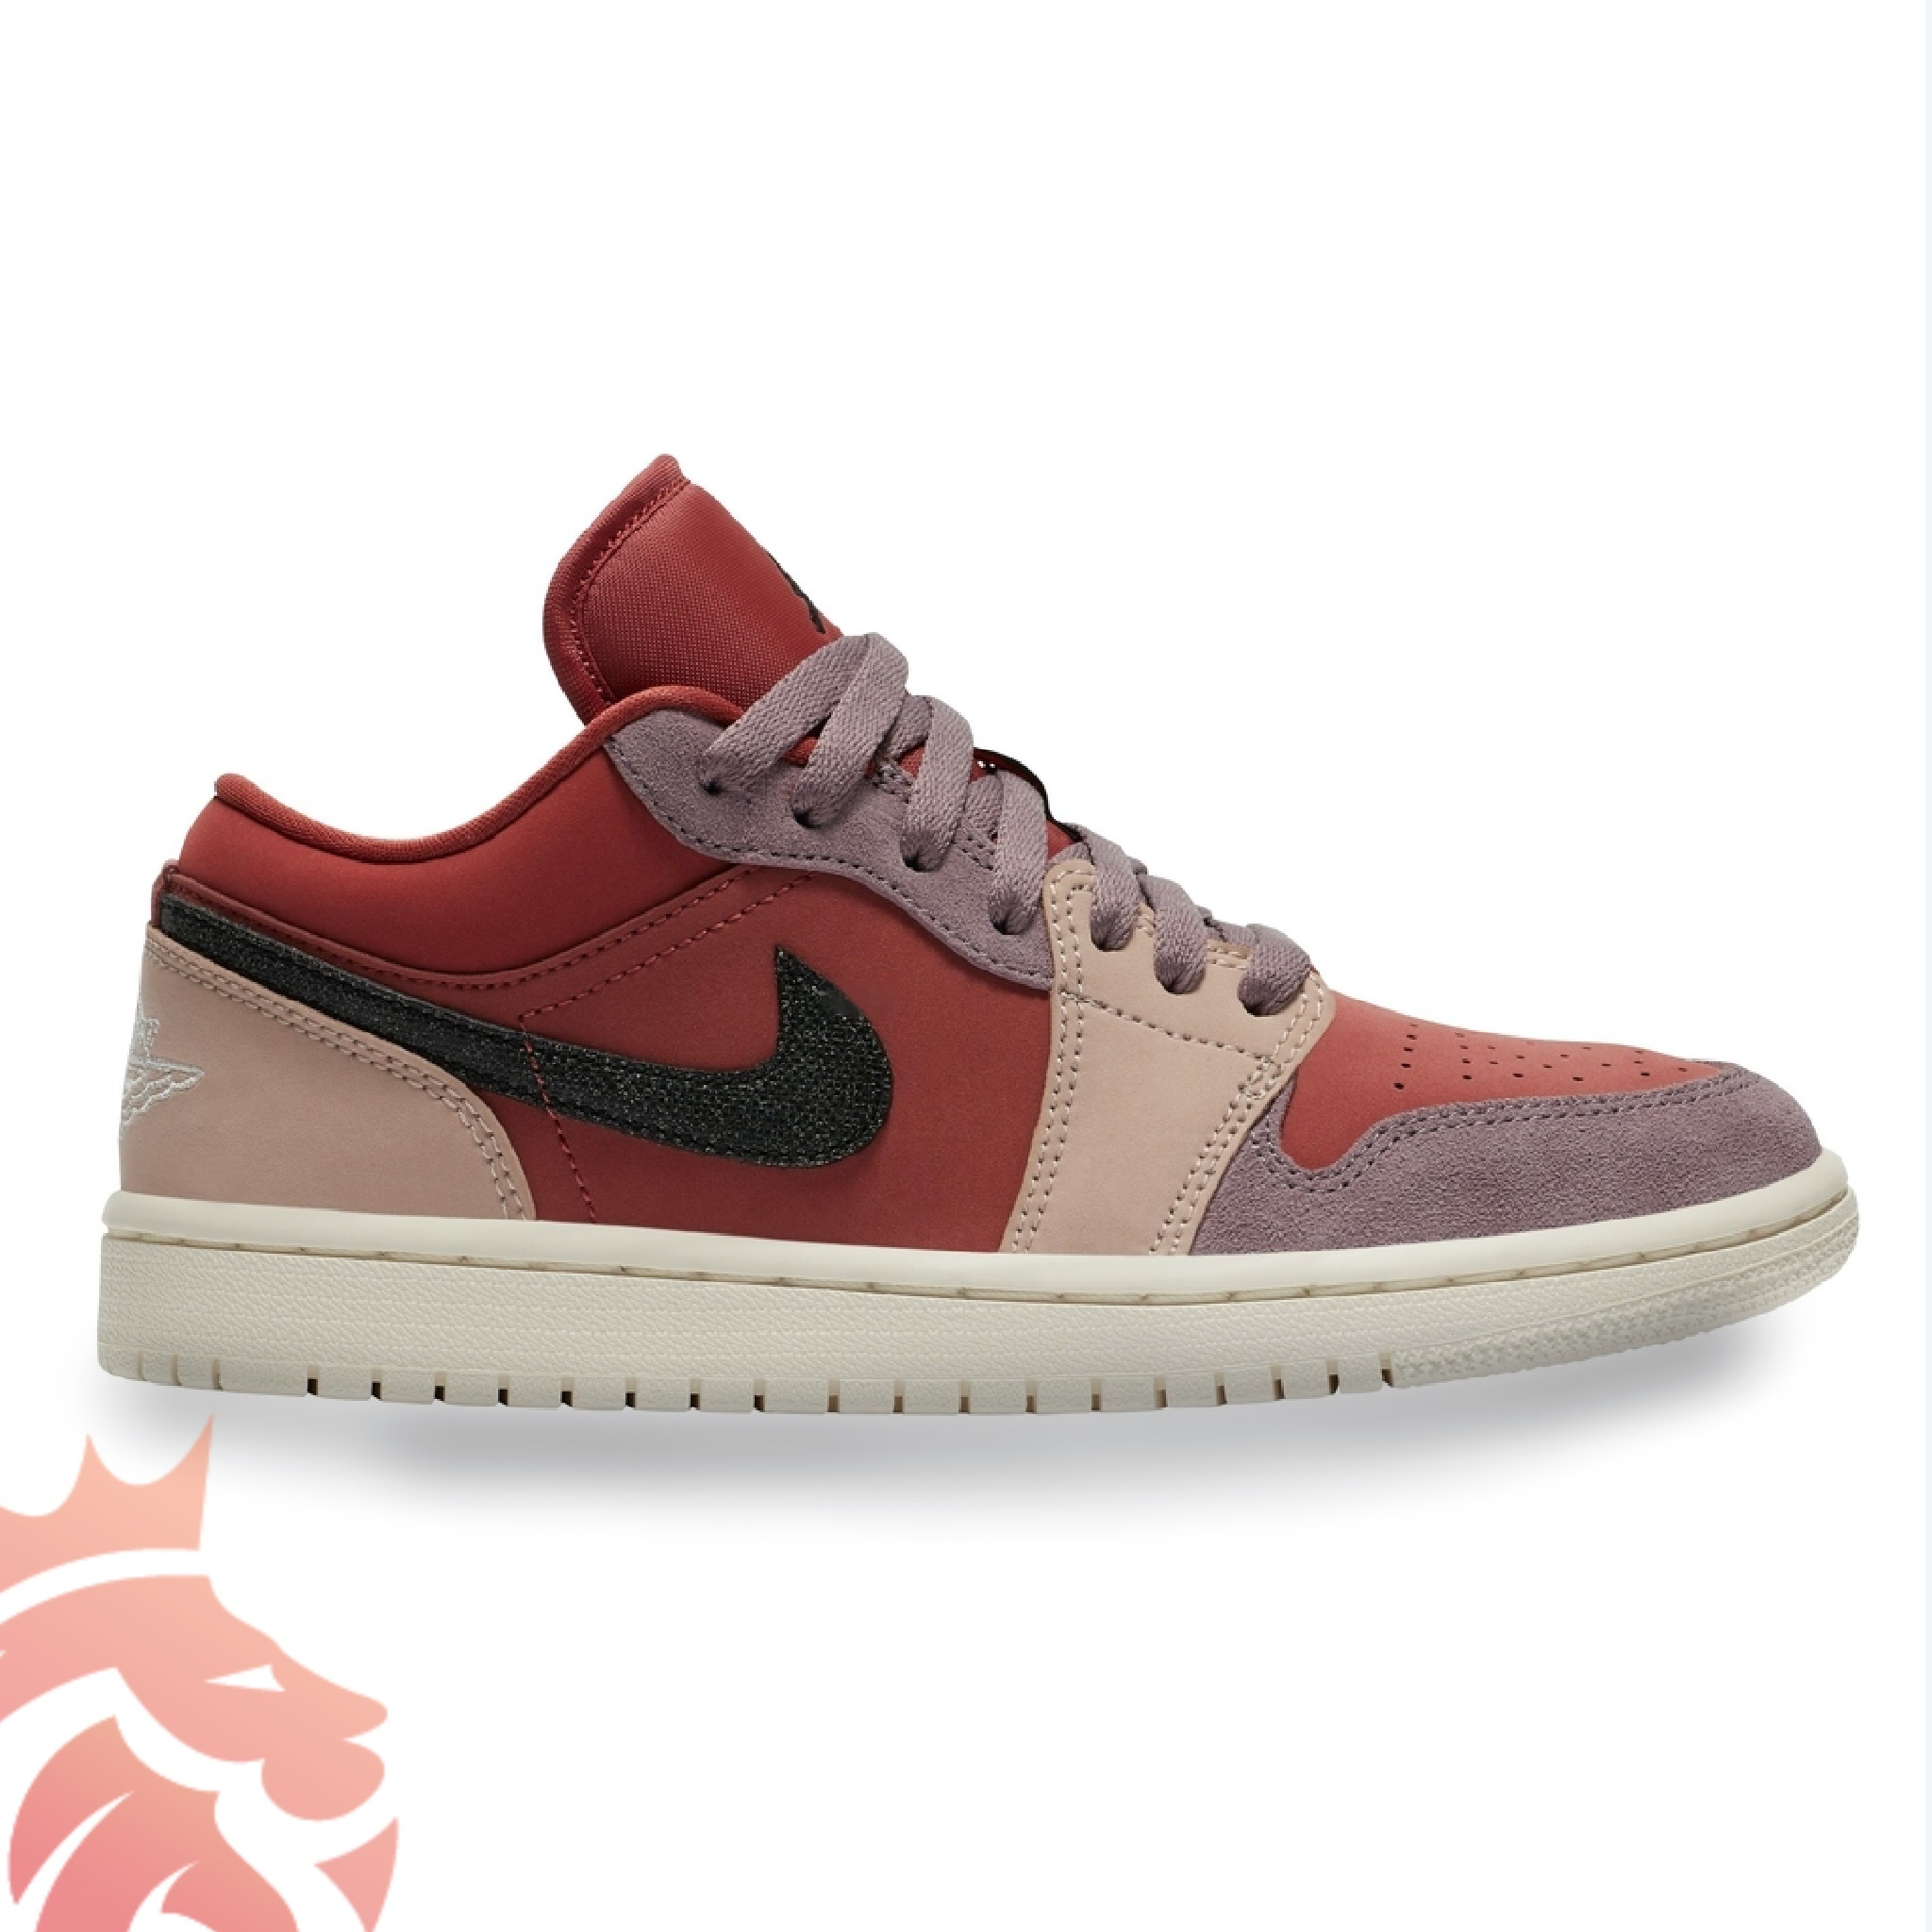 Air Jordan 1 Low Canyon Rust DC0774-602 Canyon Rust/Black/Purple Smoke